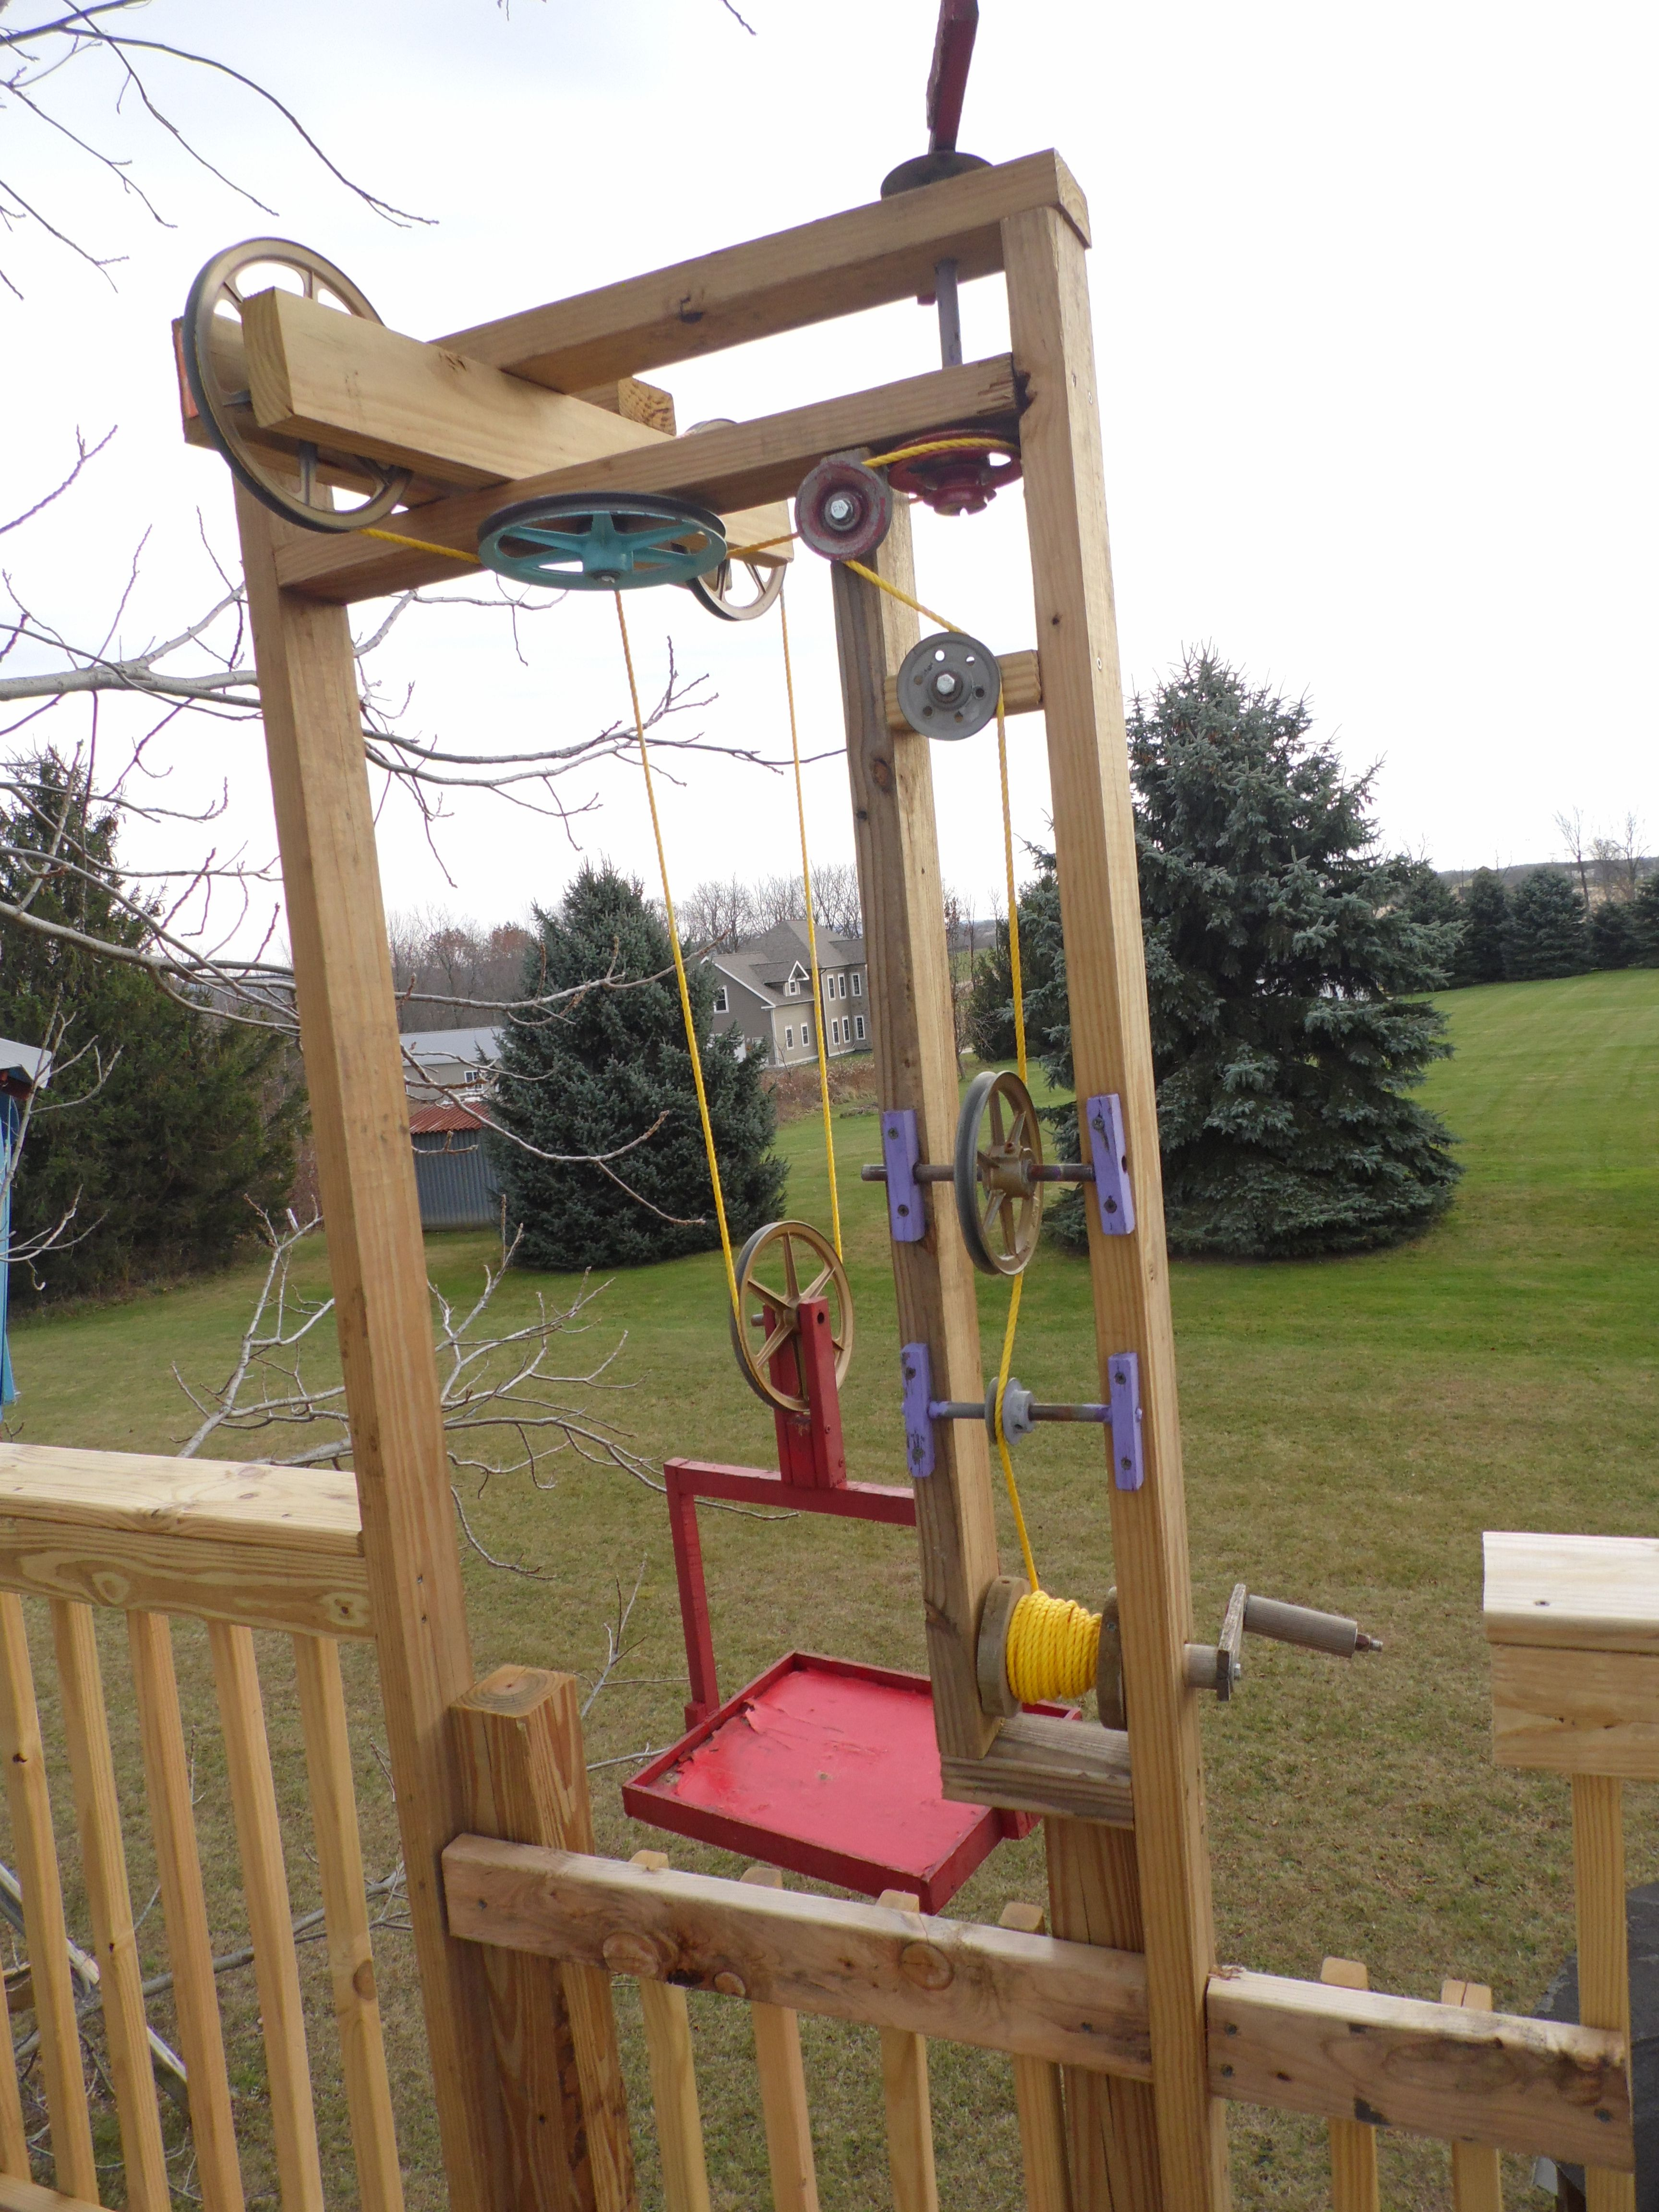 This Is A Dumb Waiter My Kids Use To Bring Things Up To The Tree Houses Check More Out At Www Treecreations O Tree House Kids Tree House Diy Tree House Plans